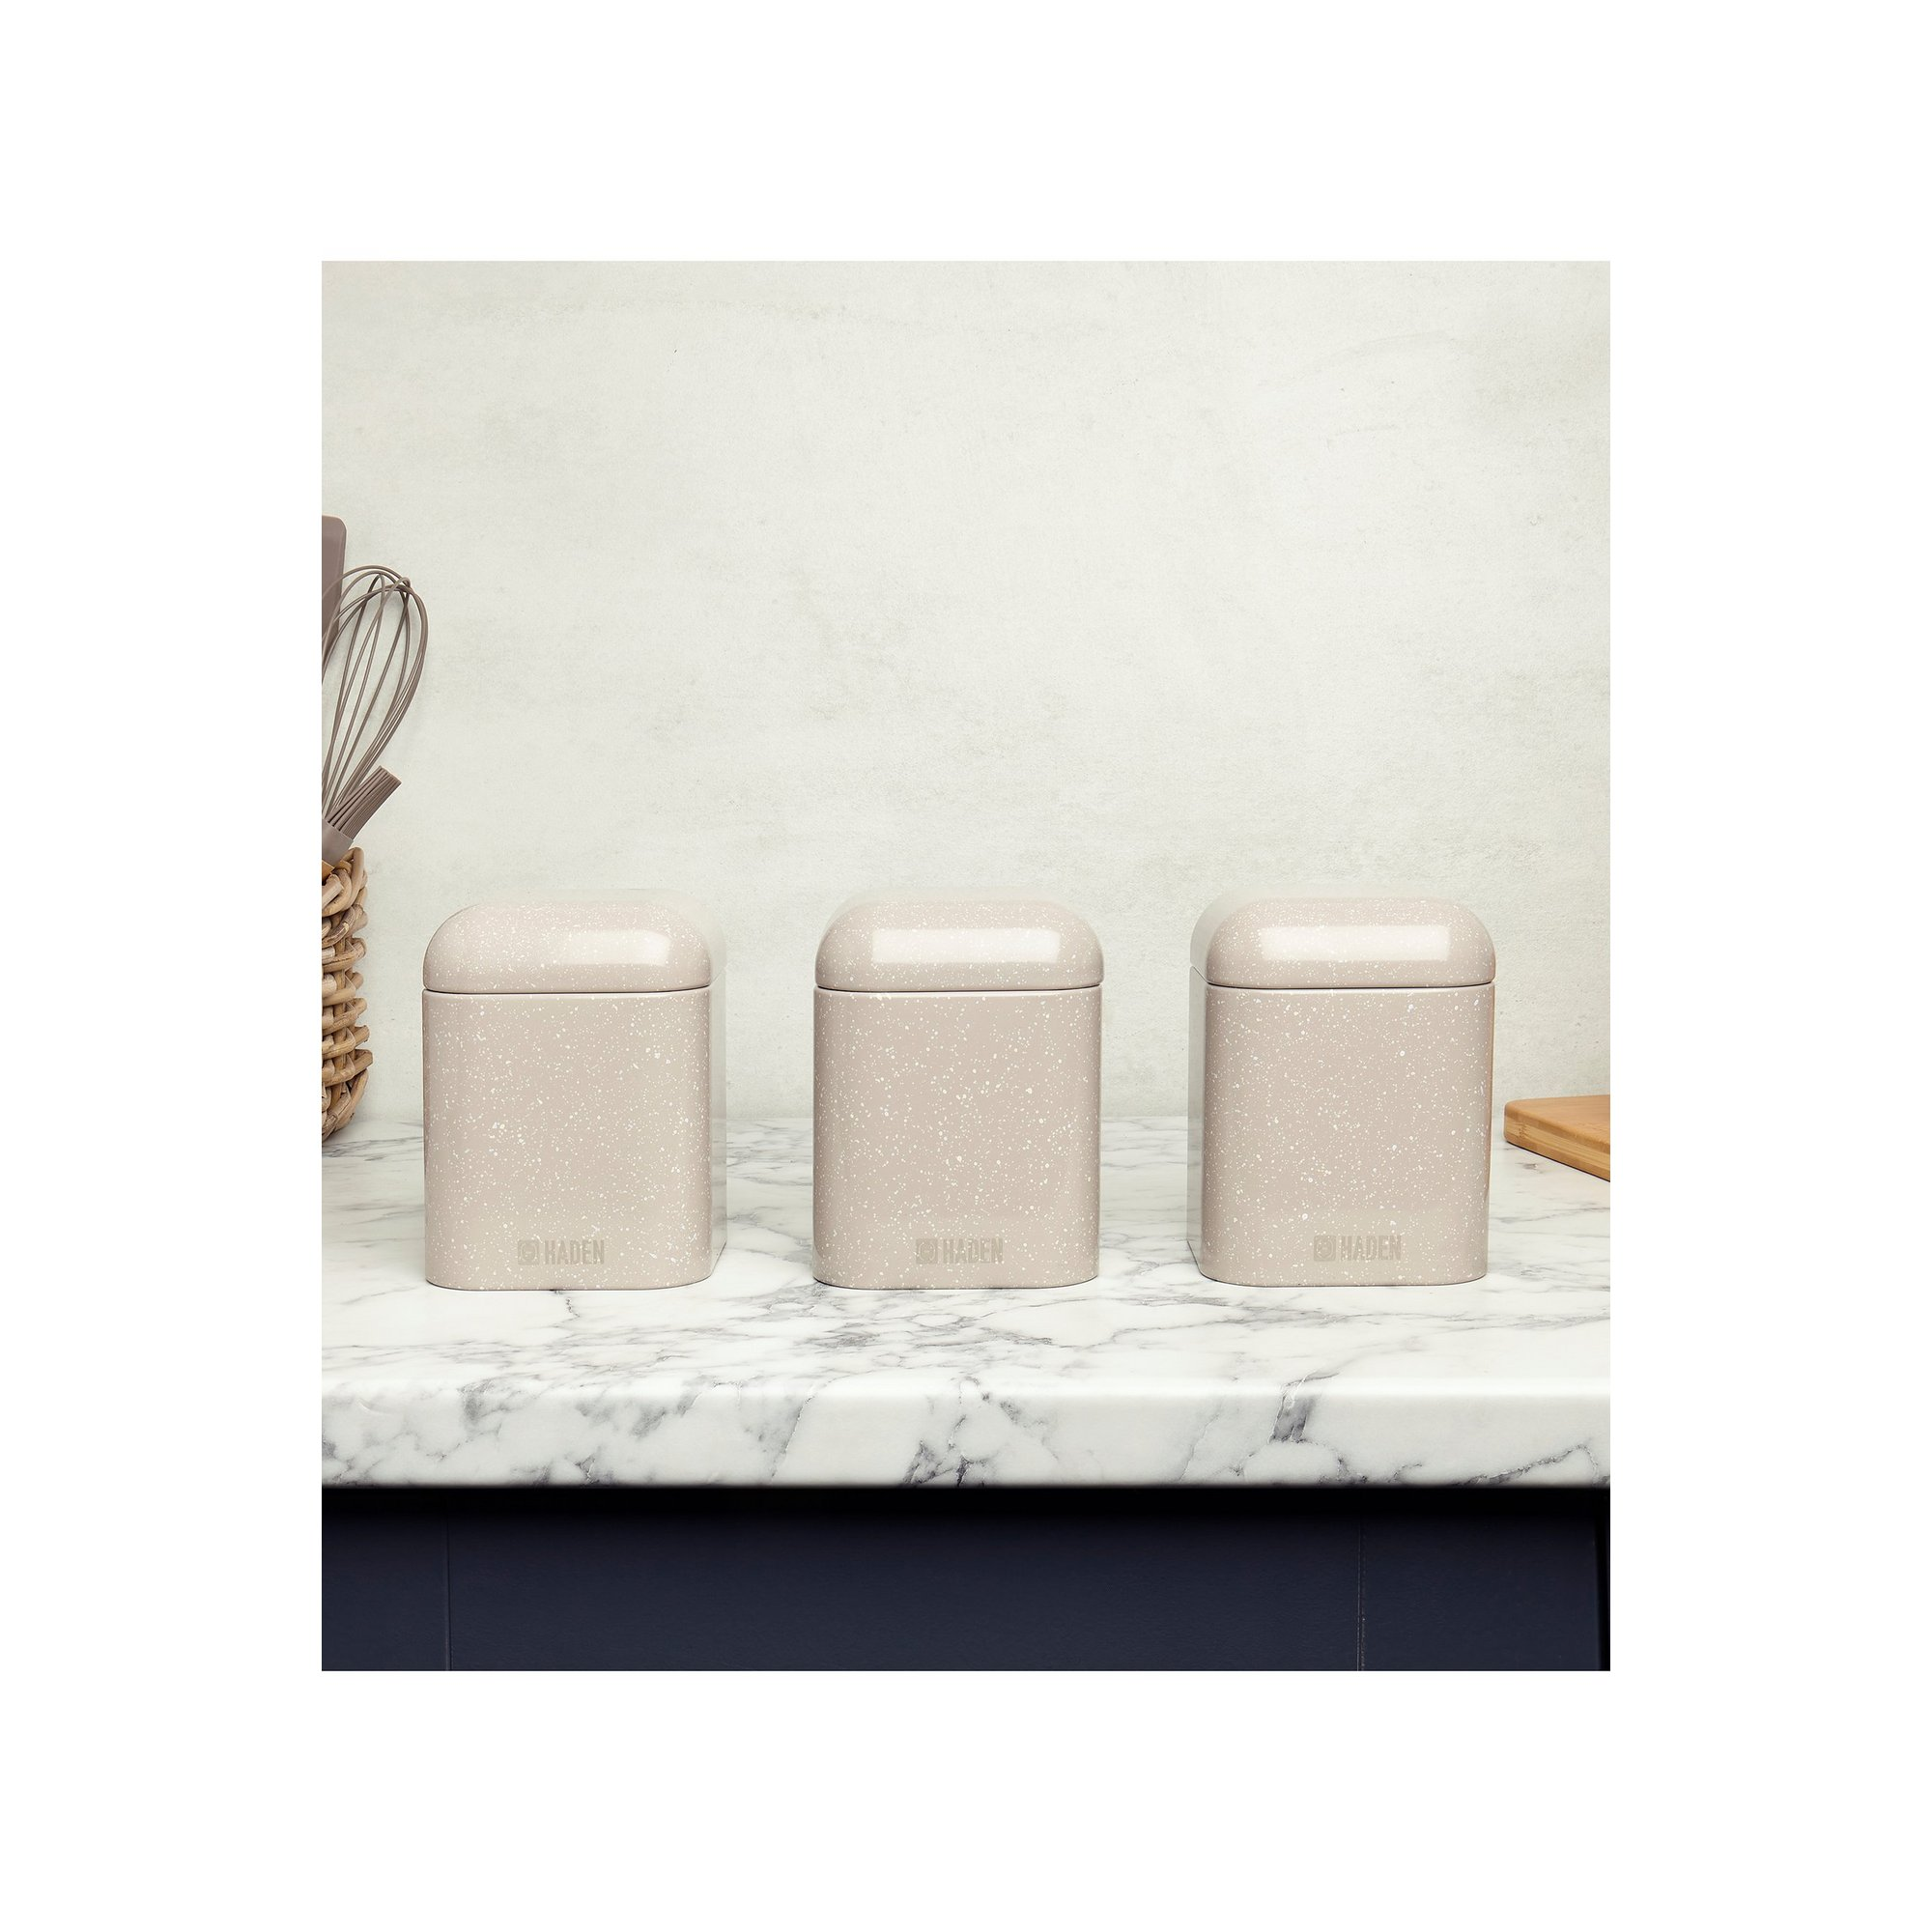 Image of Haden Putty Set of 3 Canisters